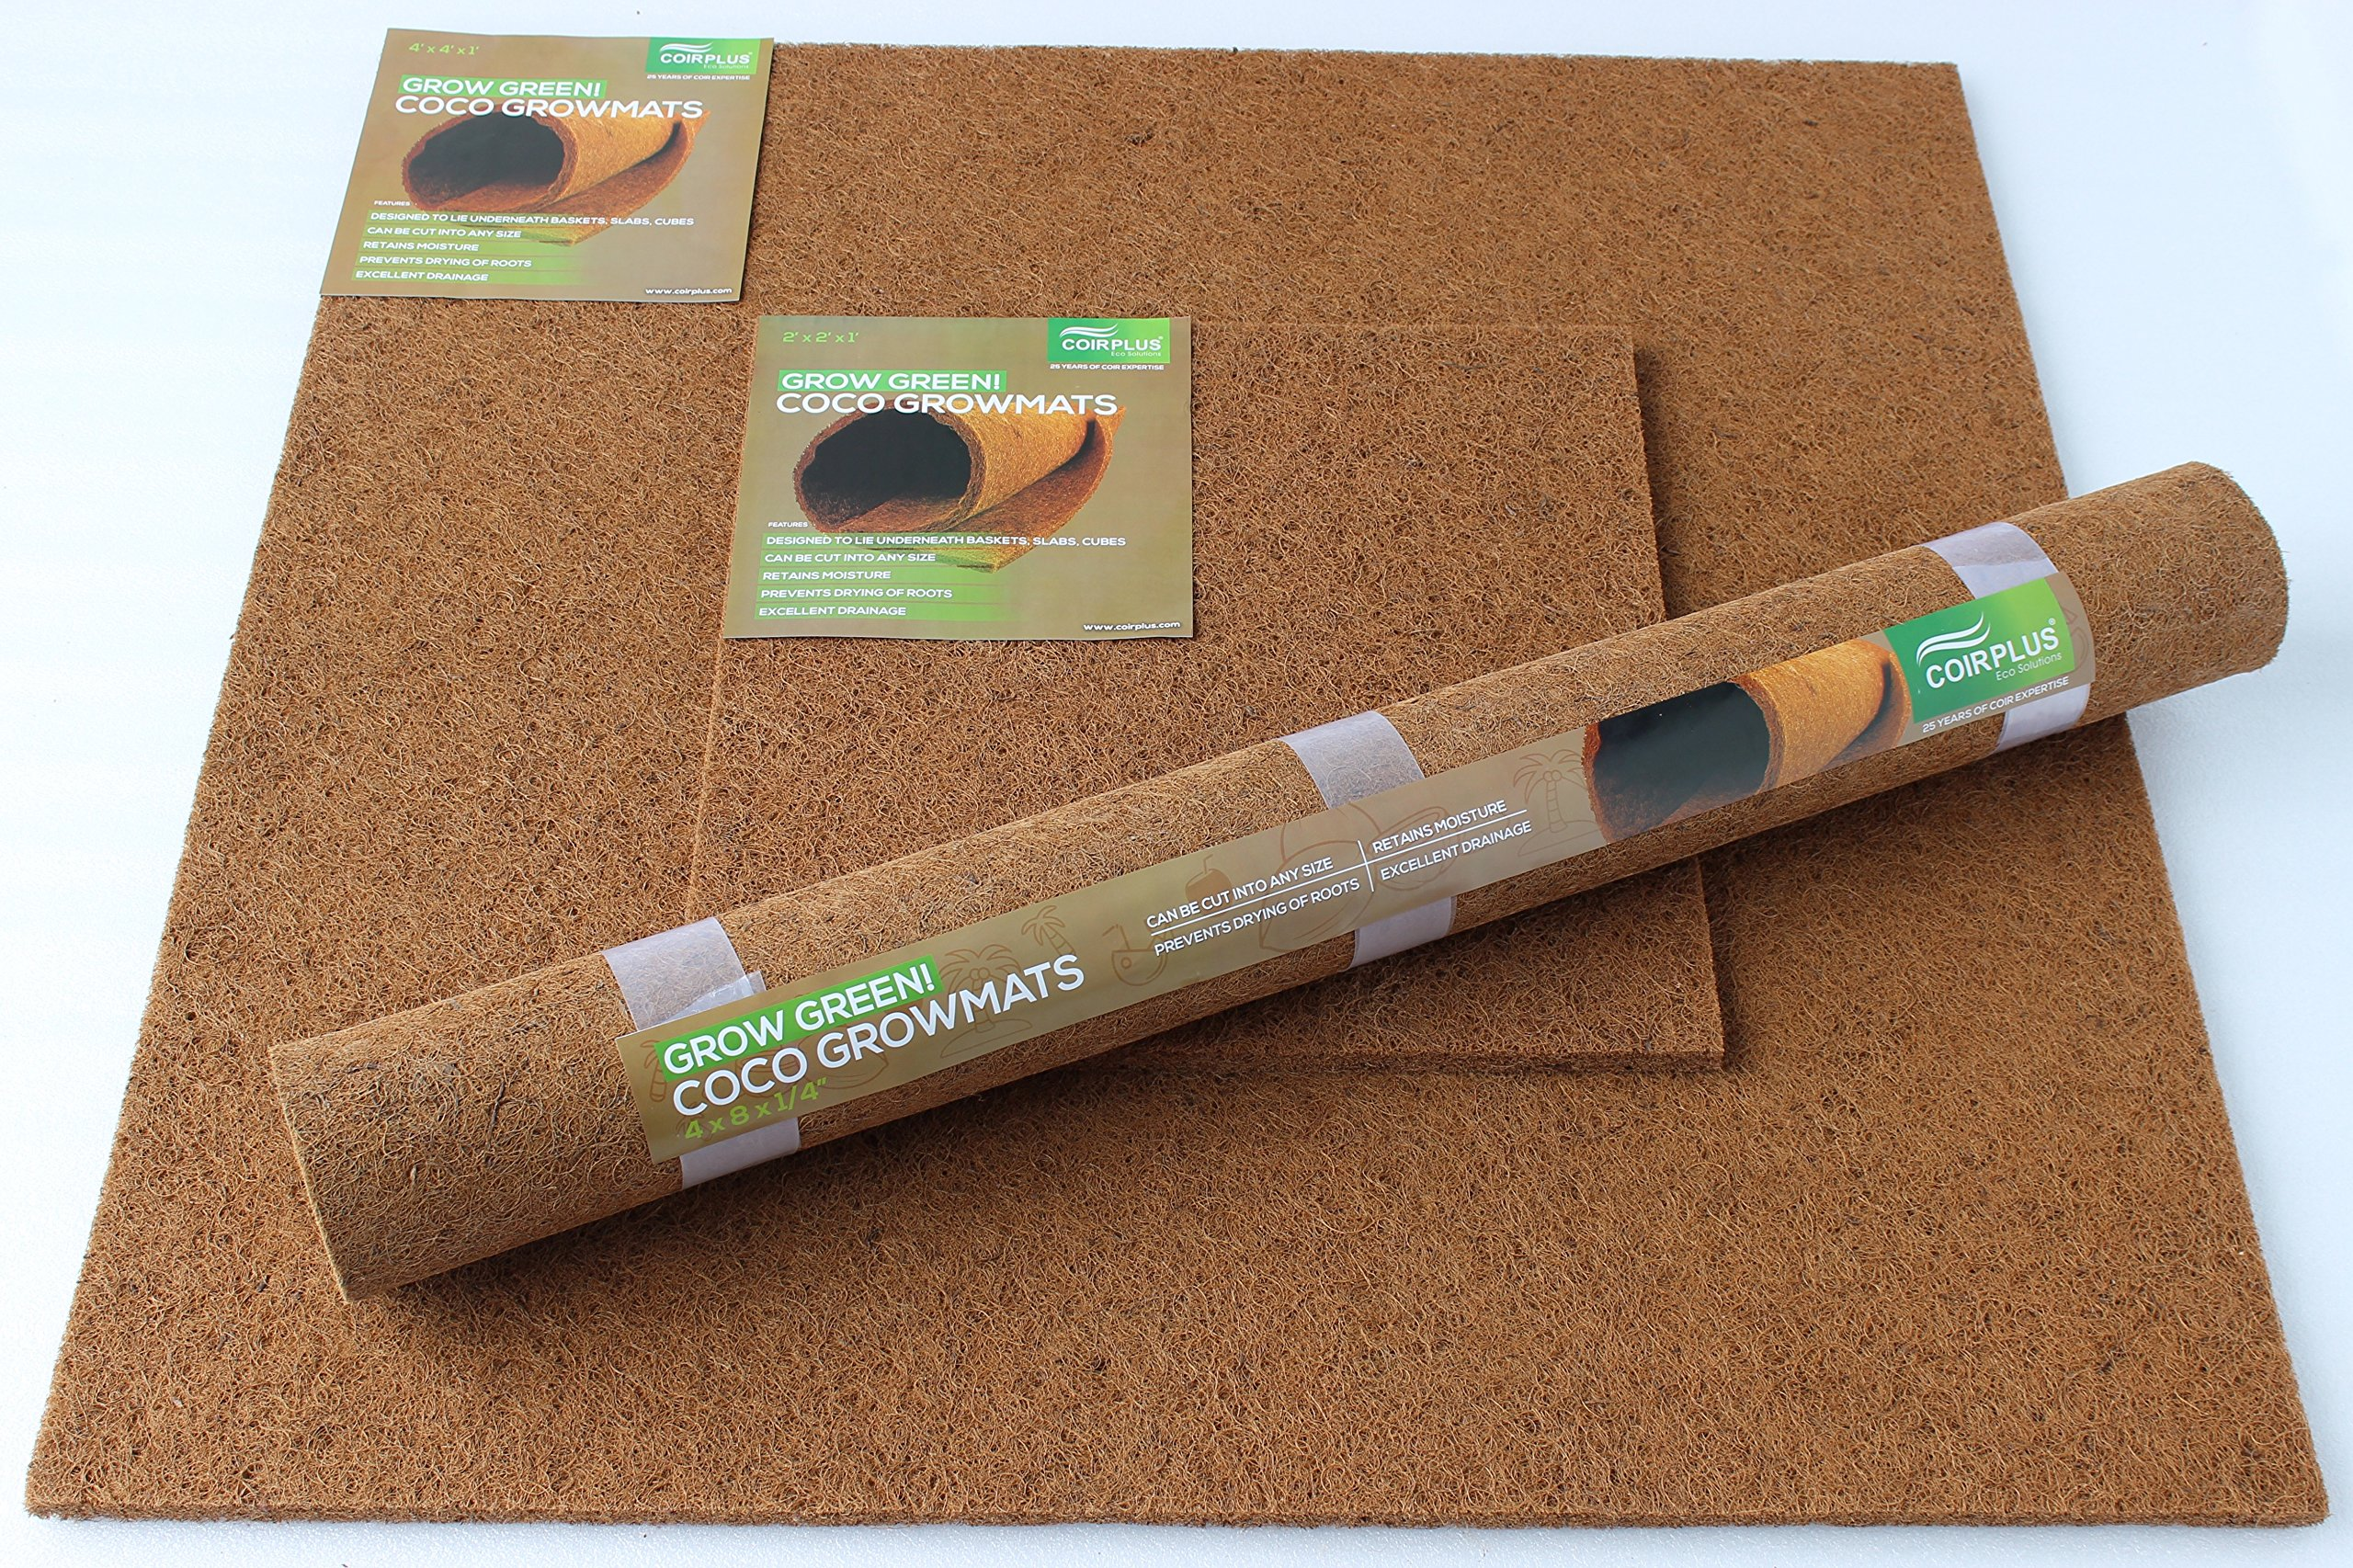 CoirPlus Premium Coco Grow Mat [OMRI Listed]: 4 ft x 4 ft x 1 in (1 piece); 100% Natural & Organic for growing Microgreens, Wheatgrass, etc